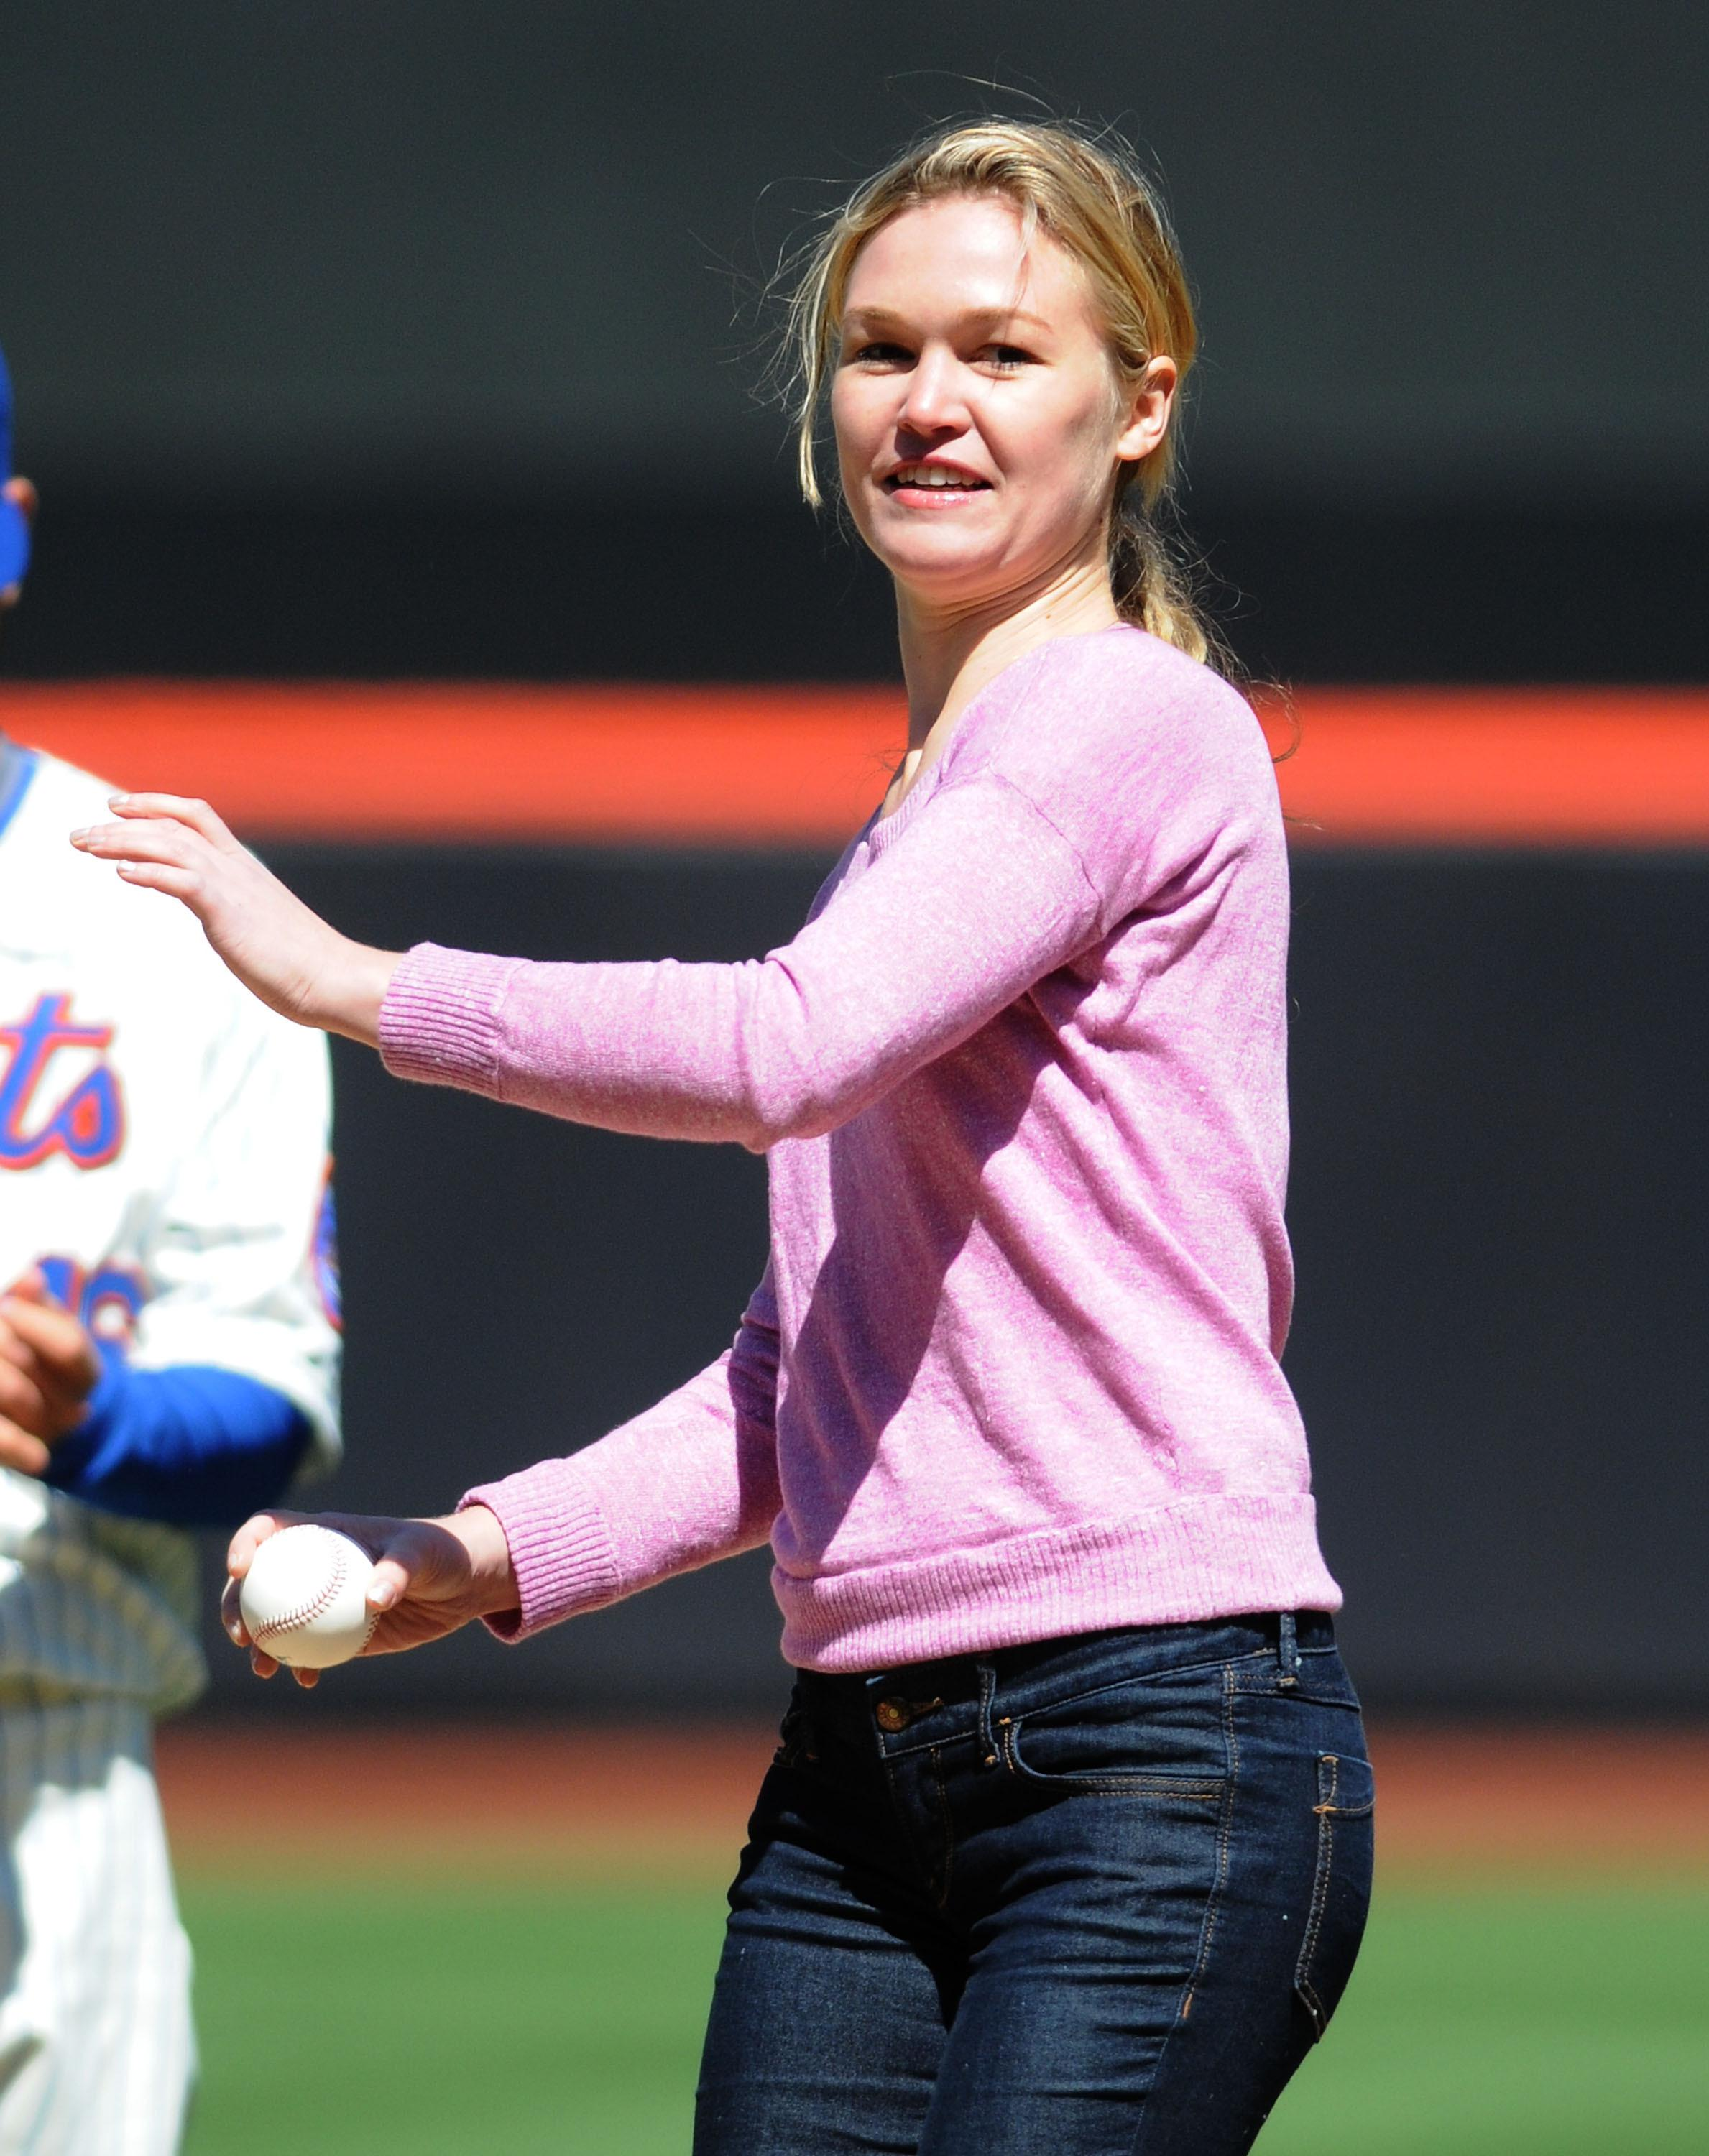 80437_Julia_Stiles_at_First_Pitch_At_The_NY_Mets_Game10_122_395lo.JPG